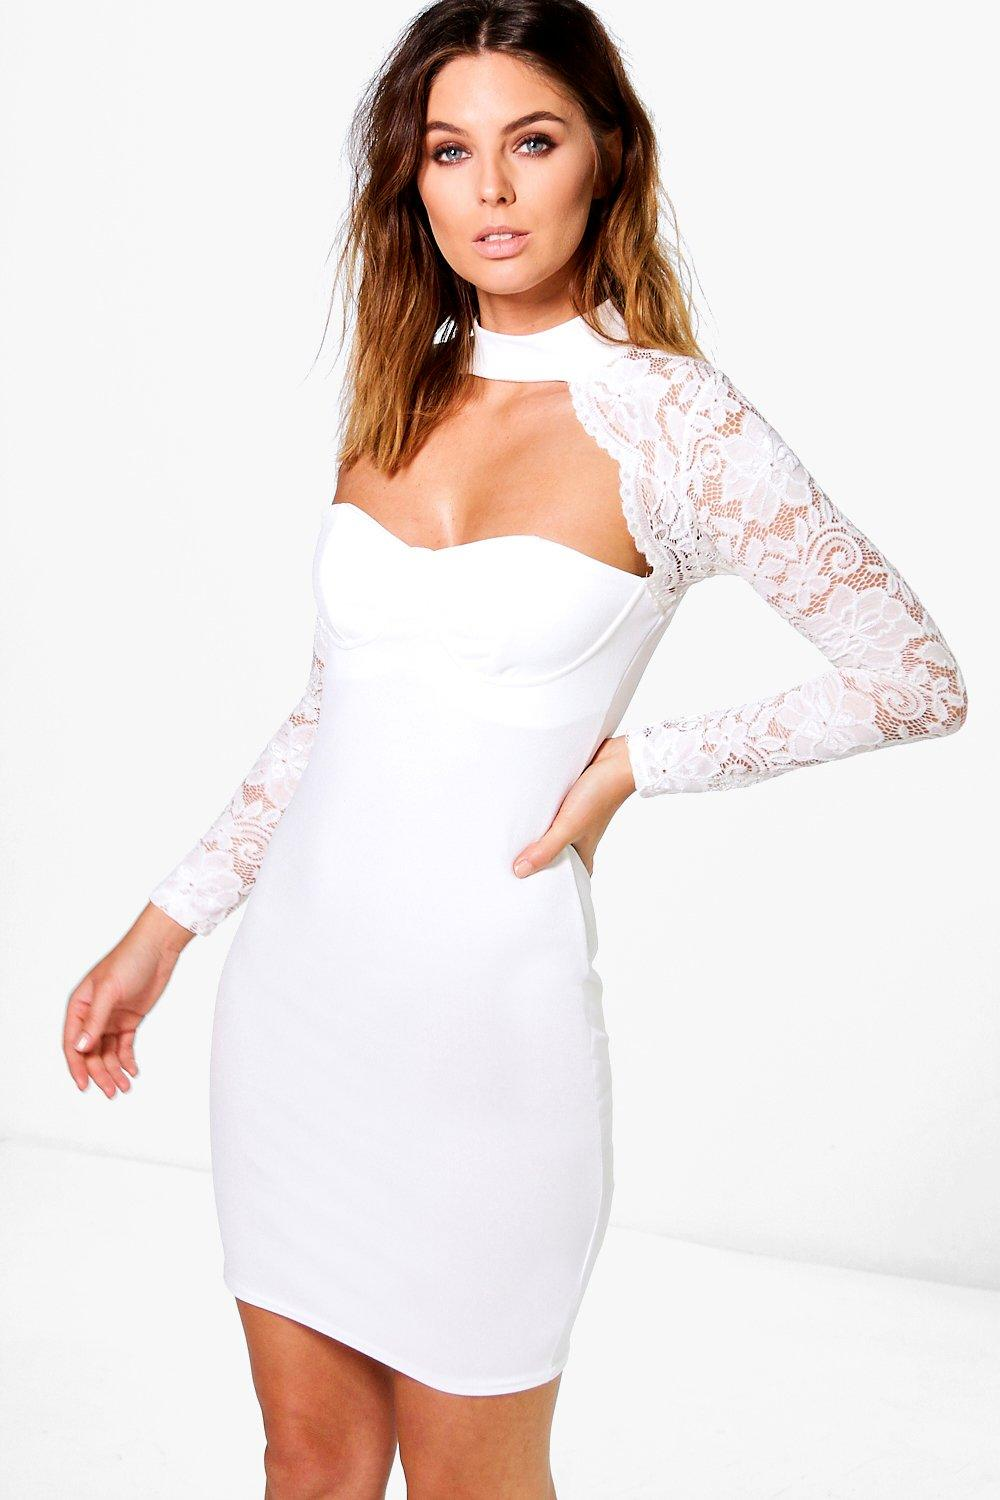 Eloise Scallop Lace Choker Bodycon Dress Boohoo